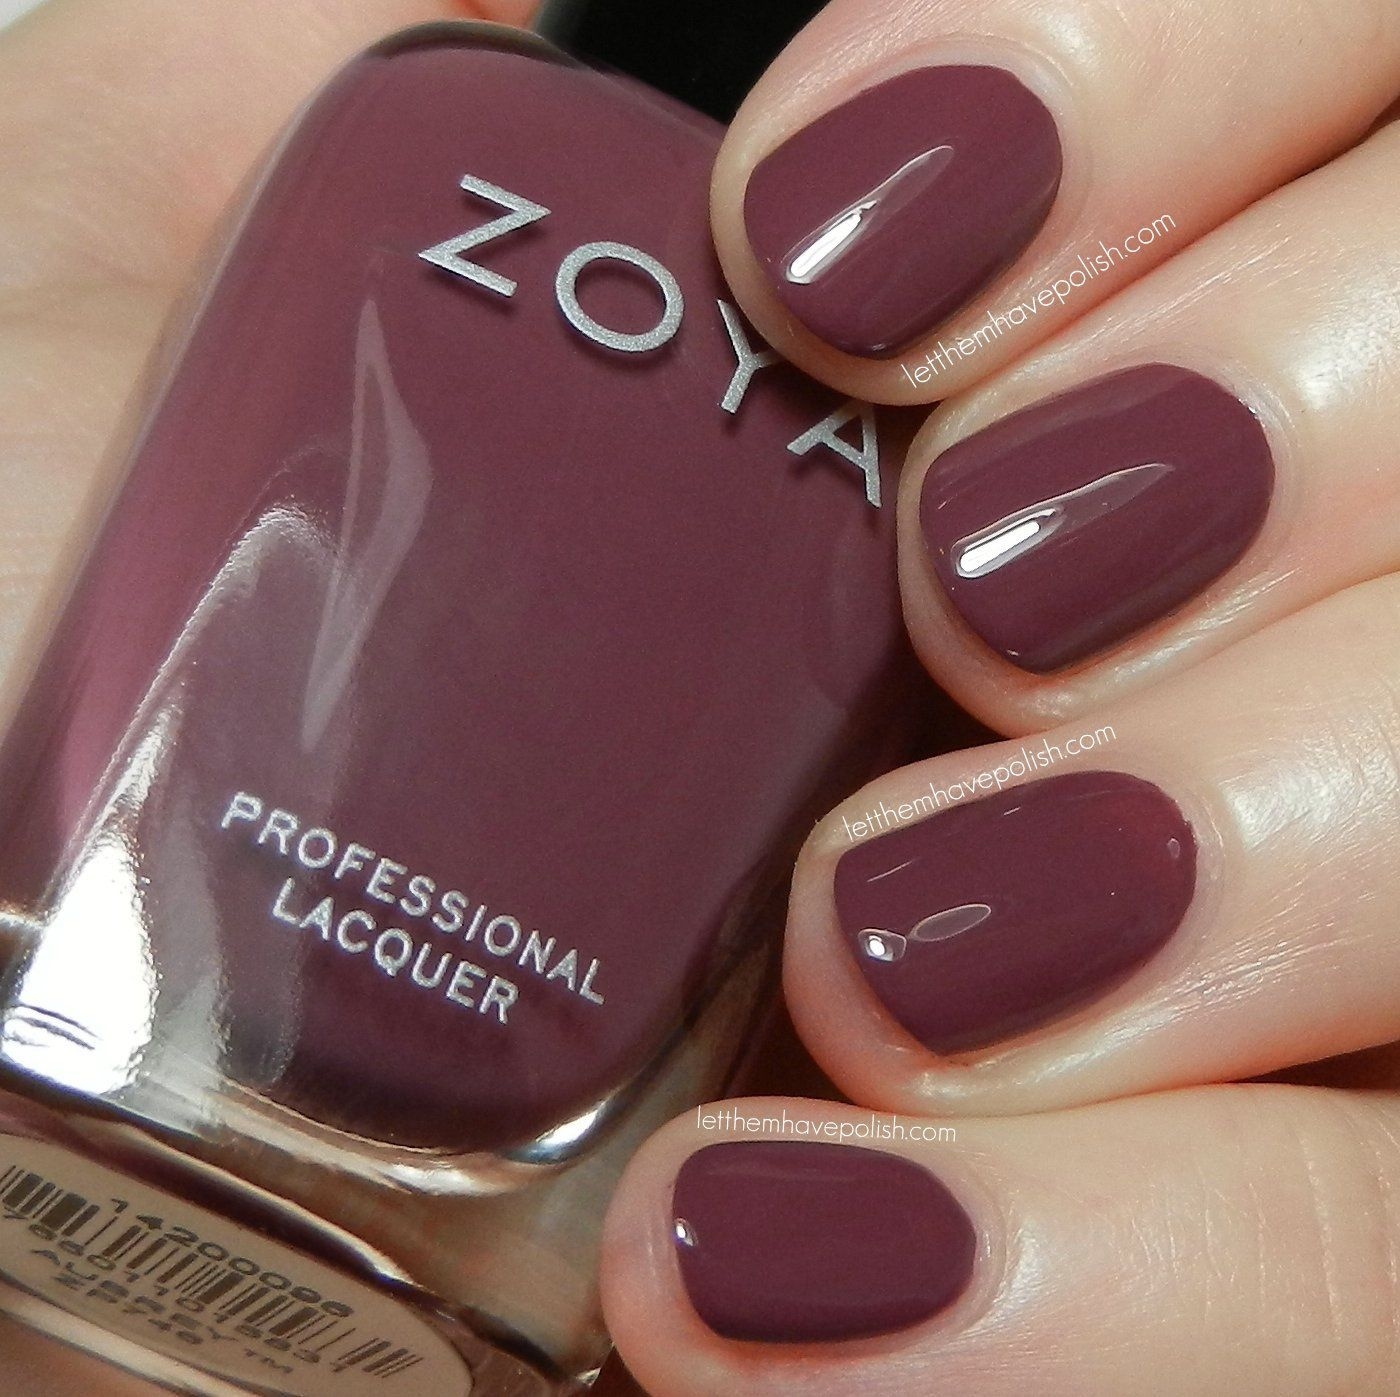 Zoya Naturel Deux Collection Swatches & Review | Let them have ...